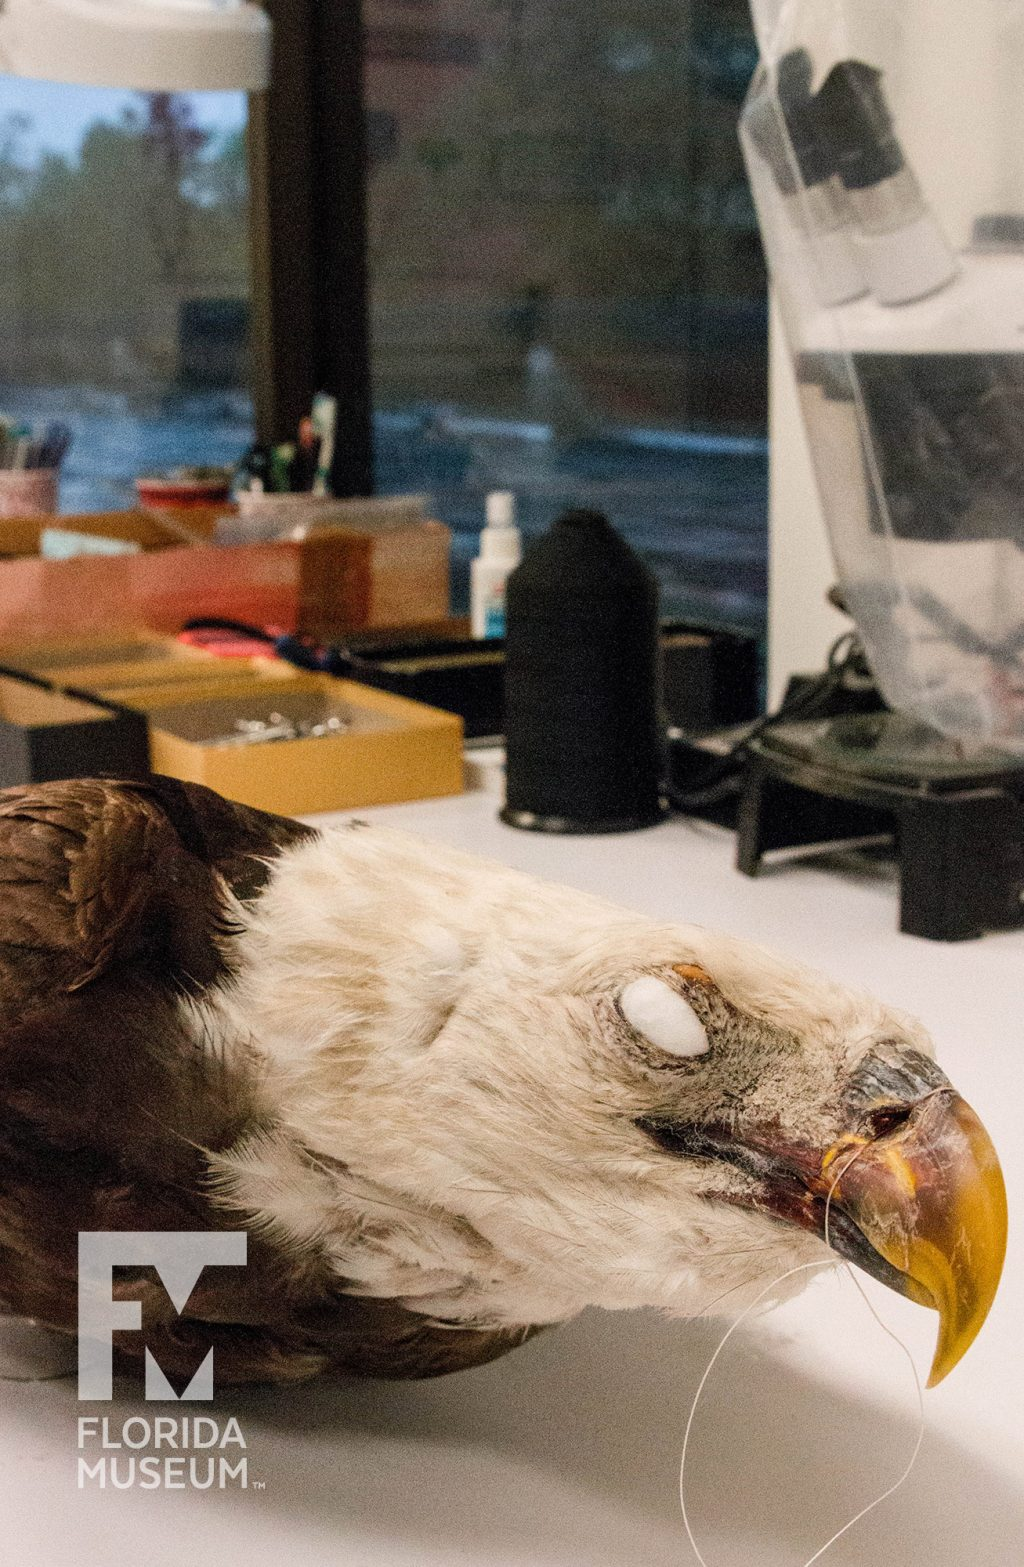 A prepared eagle head, with its beak tied and eyes removed